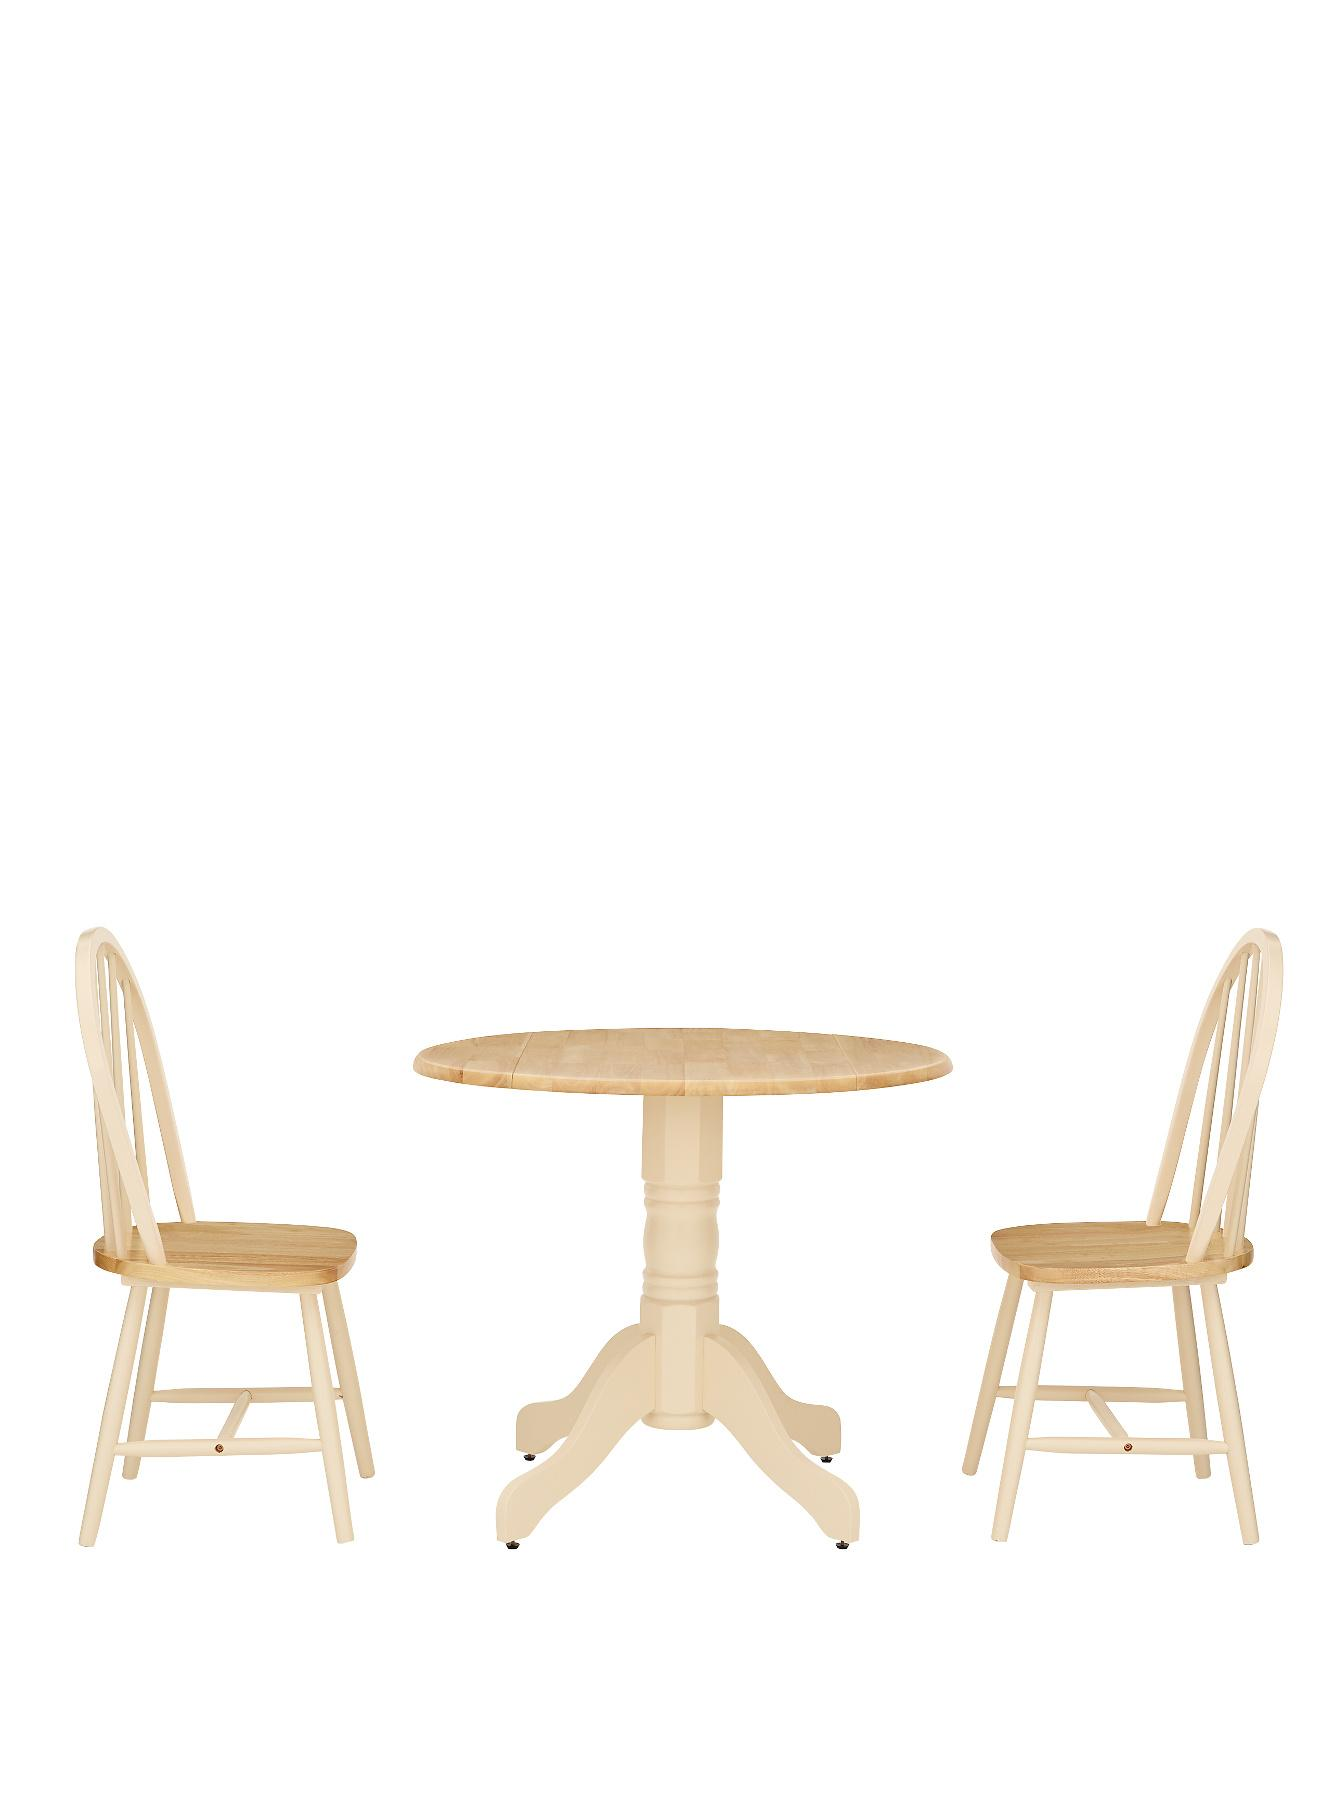 Buy cheap Round dining table wood compare products  : B467PSP271304J4UV from research.priceinspector.co.uk size 1343 x 1800 jpeg 55kB